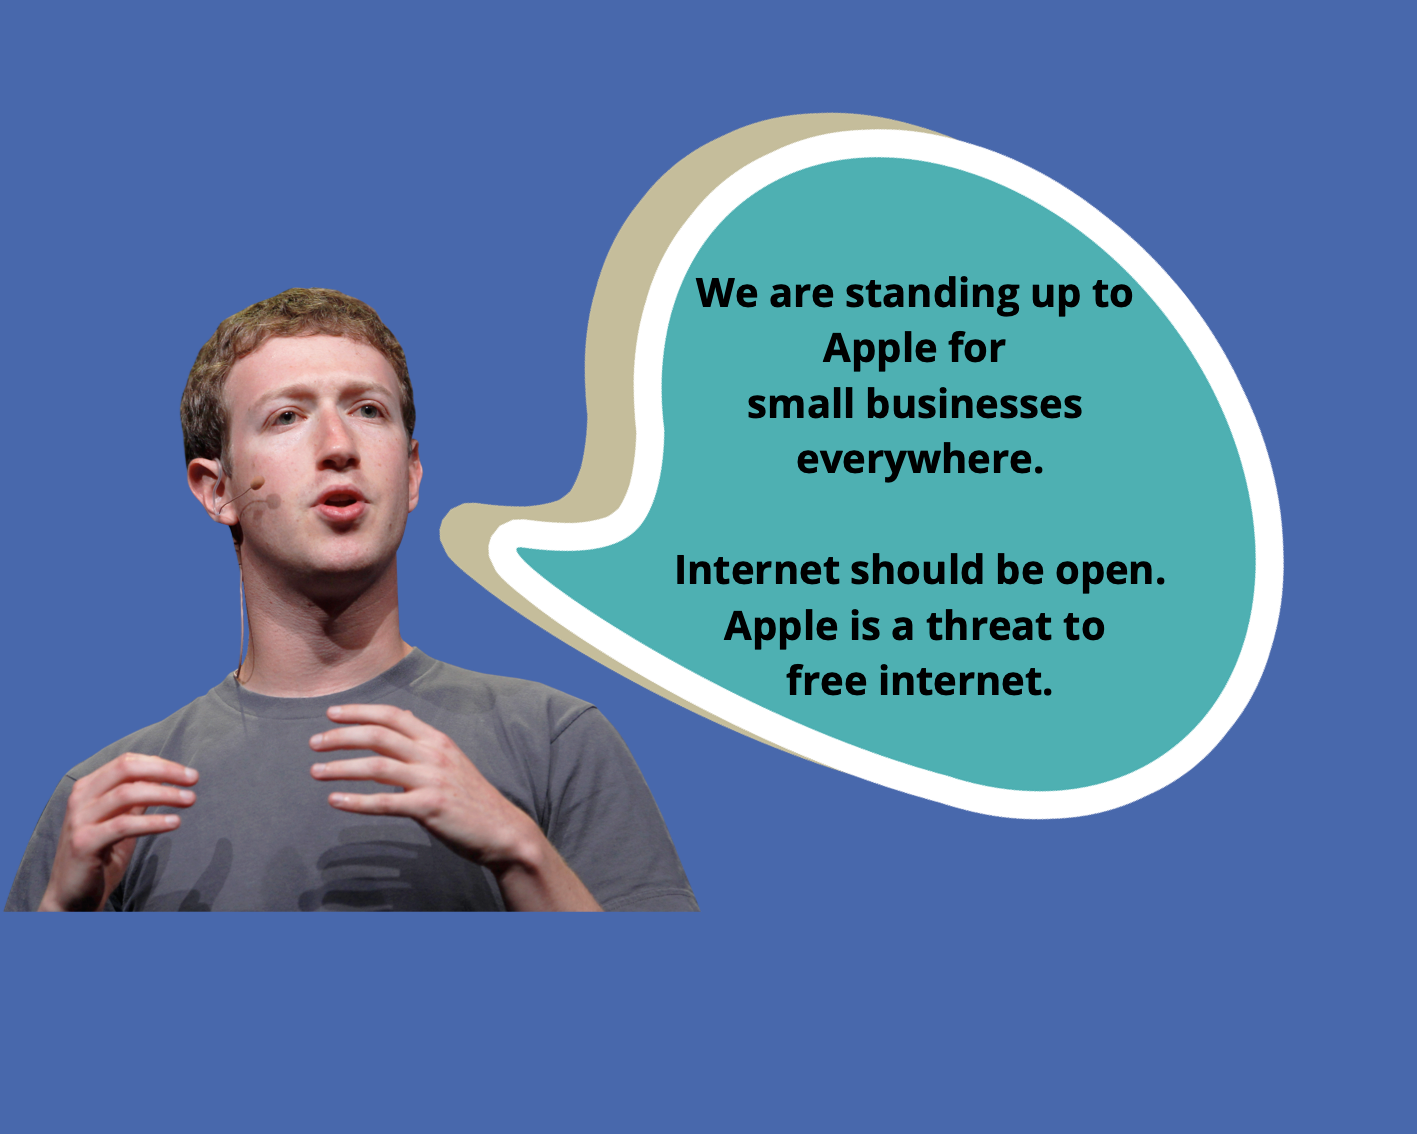 Facebook rolled out newspaper ads to criticize Apple.